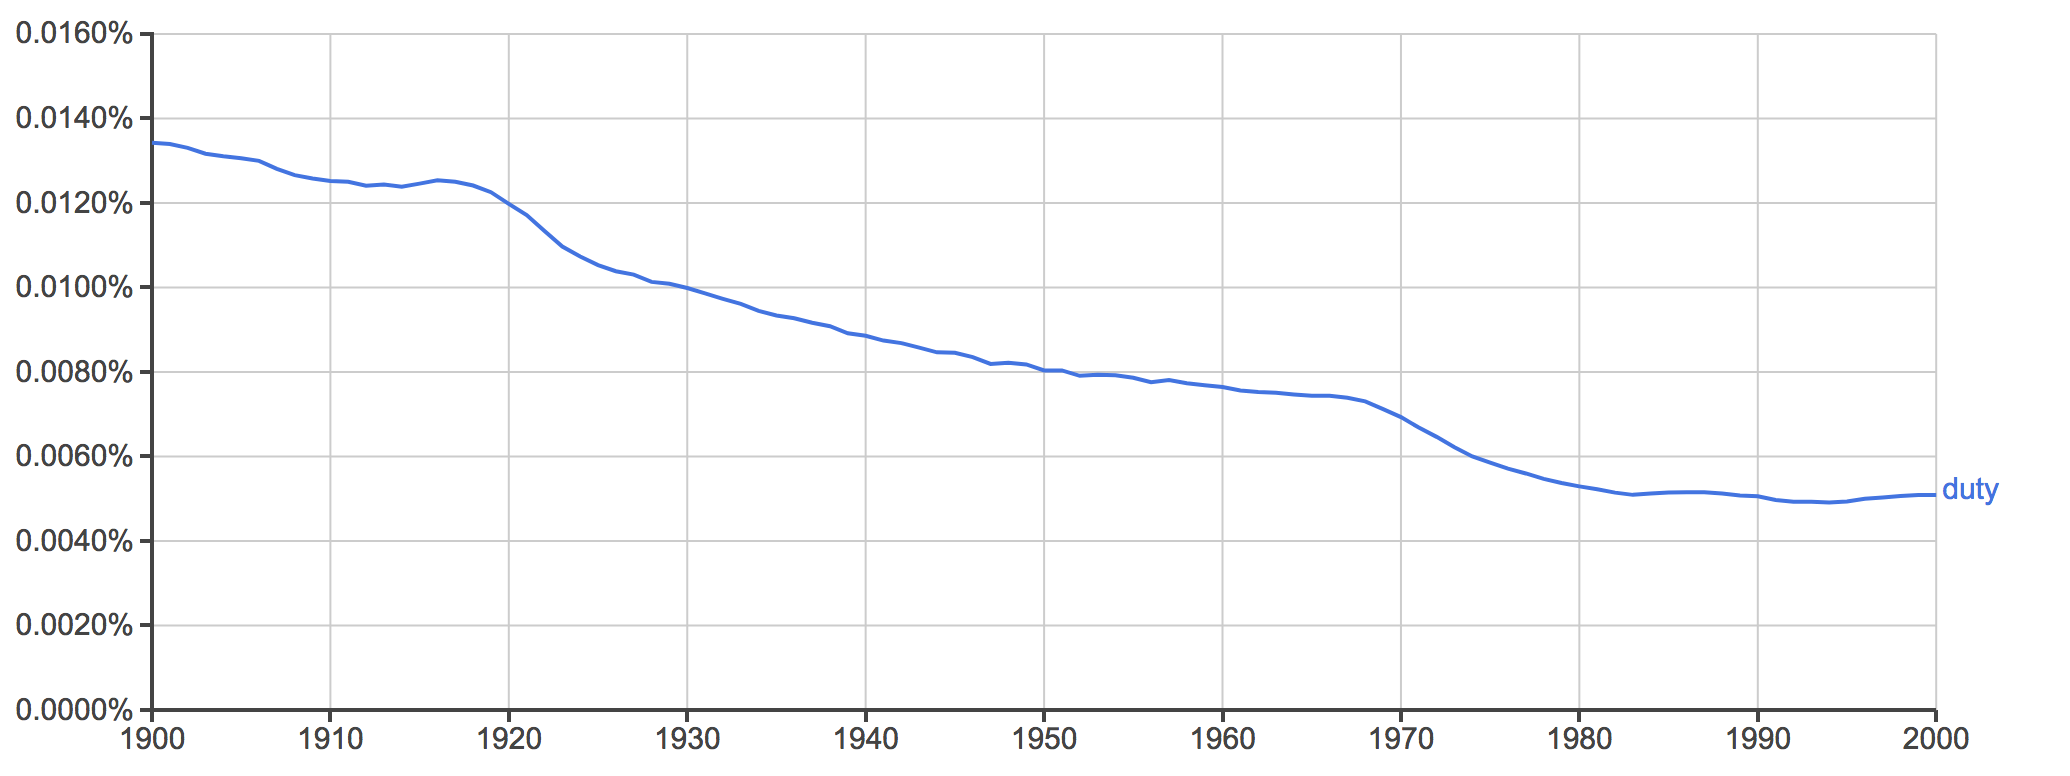 This is a graph for the word duty and how often it was used in books in the Google archive. There is a steady decrease in the word over the course of the 20th century. There is a slightly more steep drop around the mid 1970s.